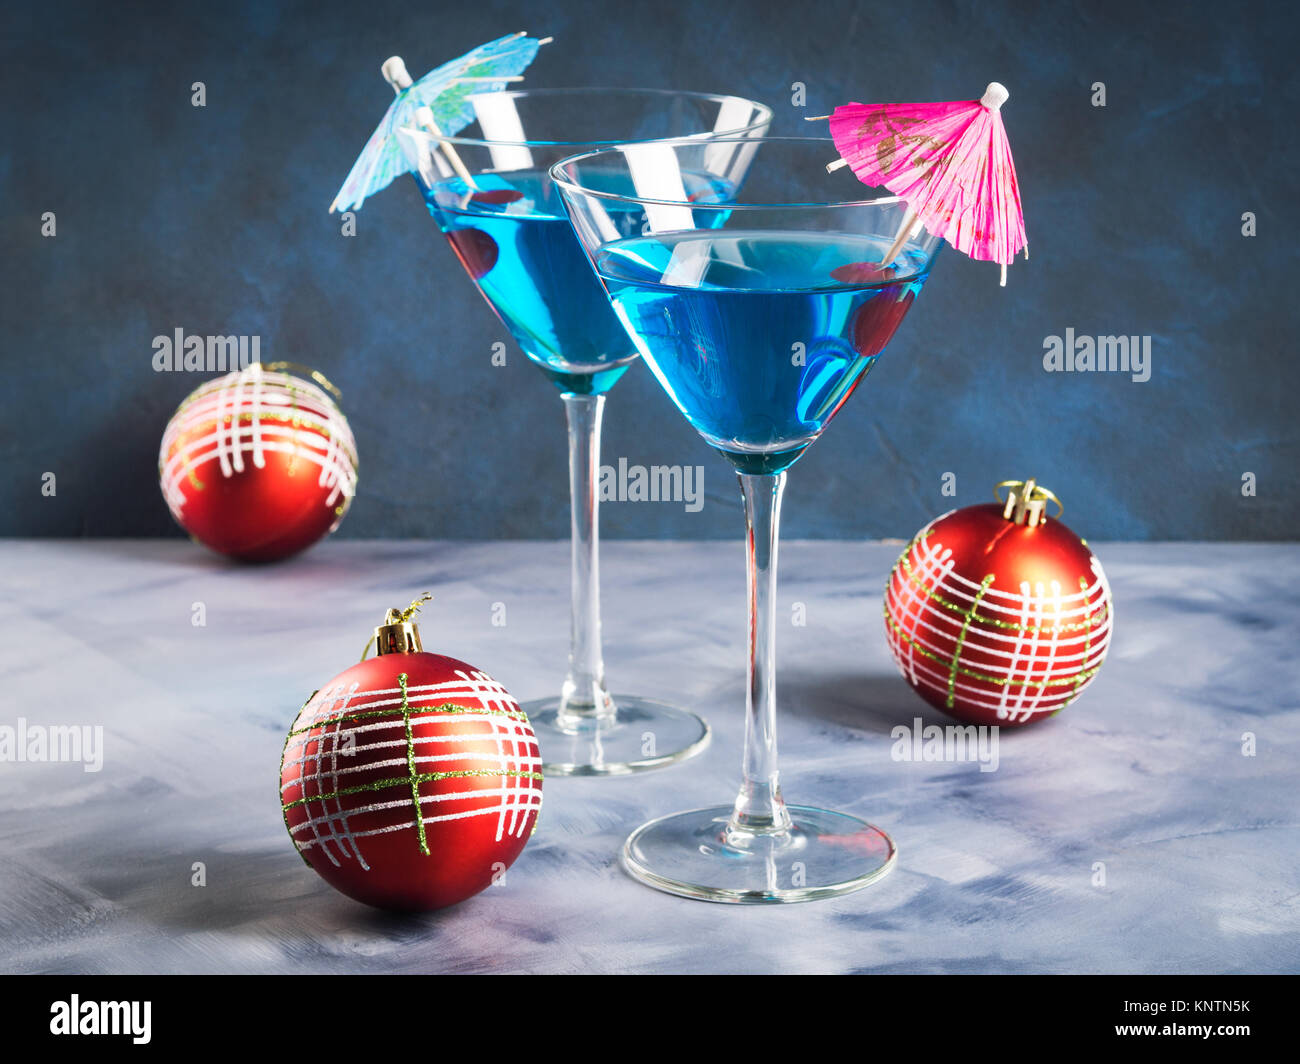 Blue martini cherry stock photos blue martini cherry for Christmas in a glass cocktail